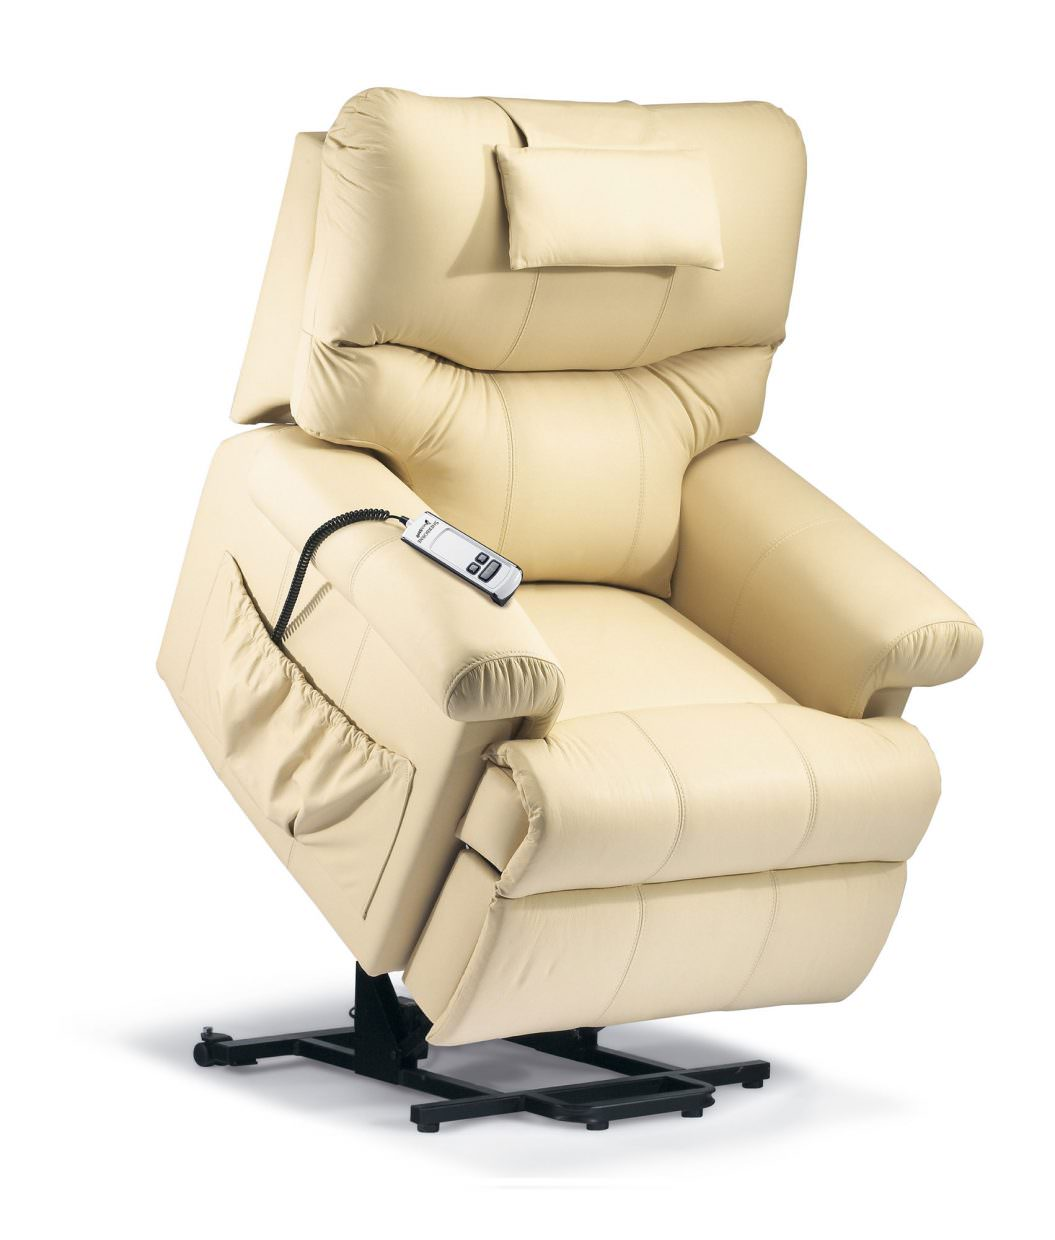 Sherborne Norvik Leather Rise Amp Recliner Chairs